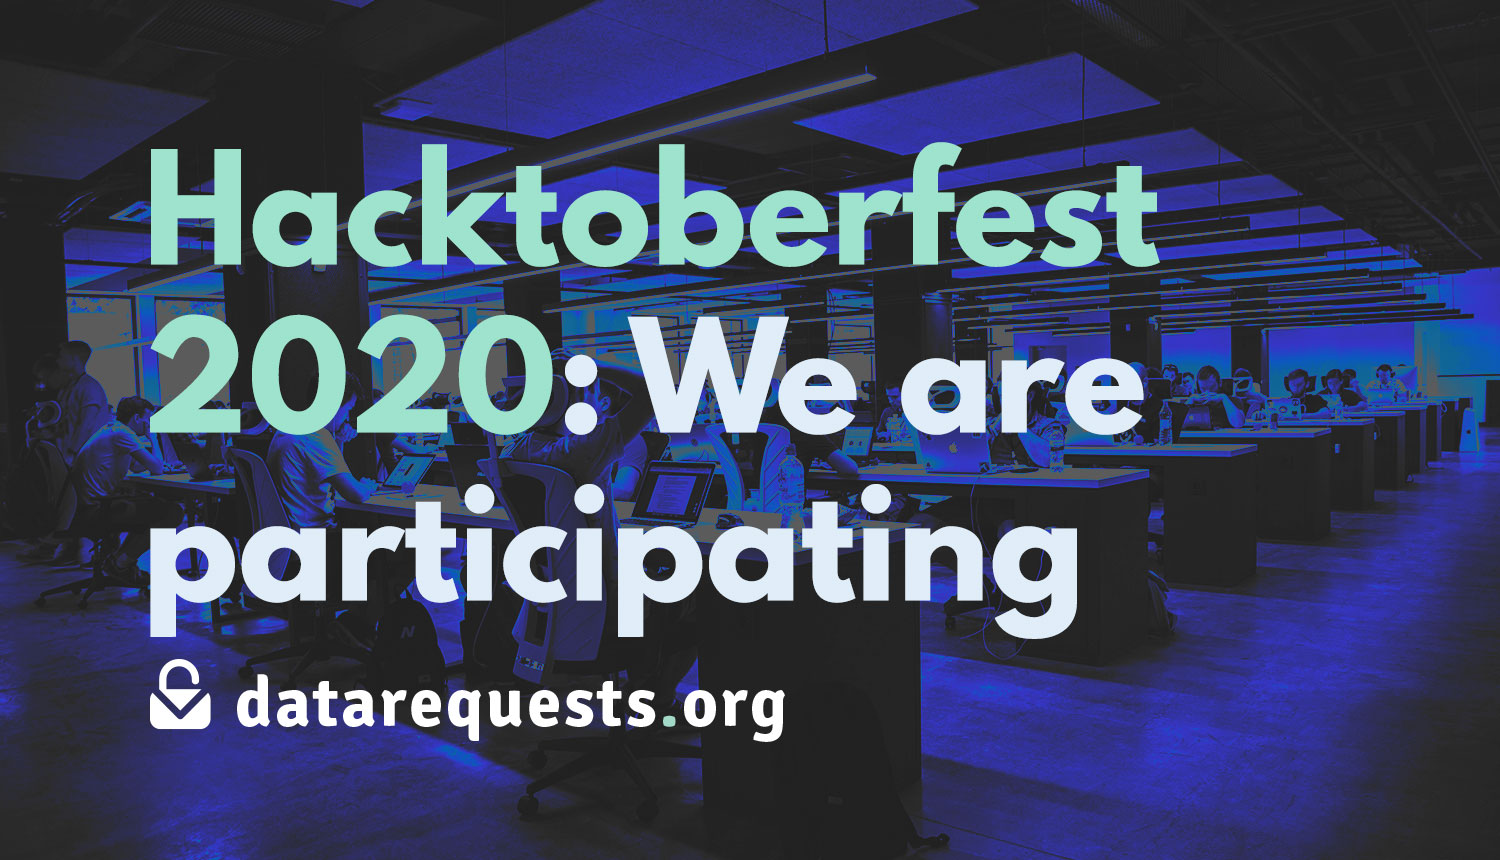 We are also participating in the Hacktoberfest 2020